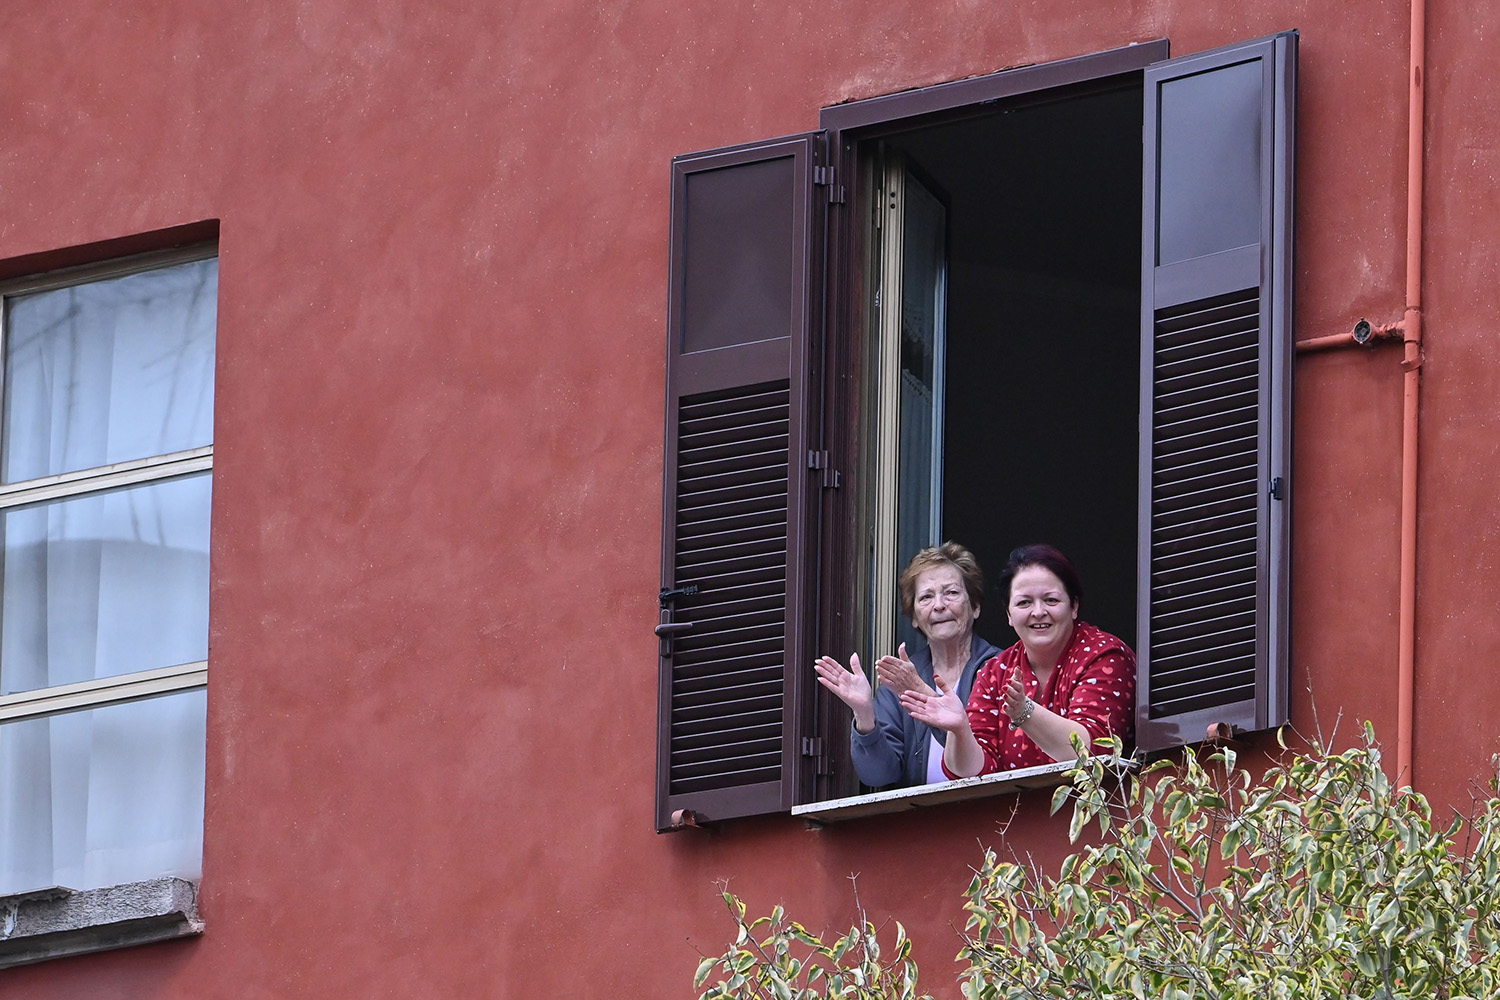 """Women clap their hands during a flash mob """"un applauso per l'Italia"""" (an applause for Italy) in Rome on March 14. People throughout Italy were encouraged to gather on balconies and at windows to sing, play, or listen to music to lift spirits and break the monotony of the coronavirus lockdown. ANDREAS SOLARO/AFP via Getty Images"""